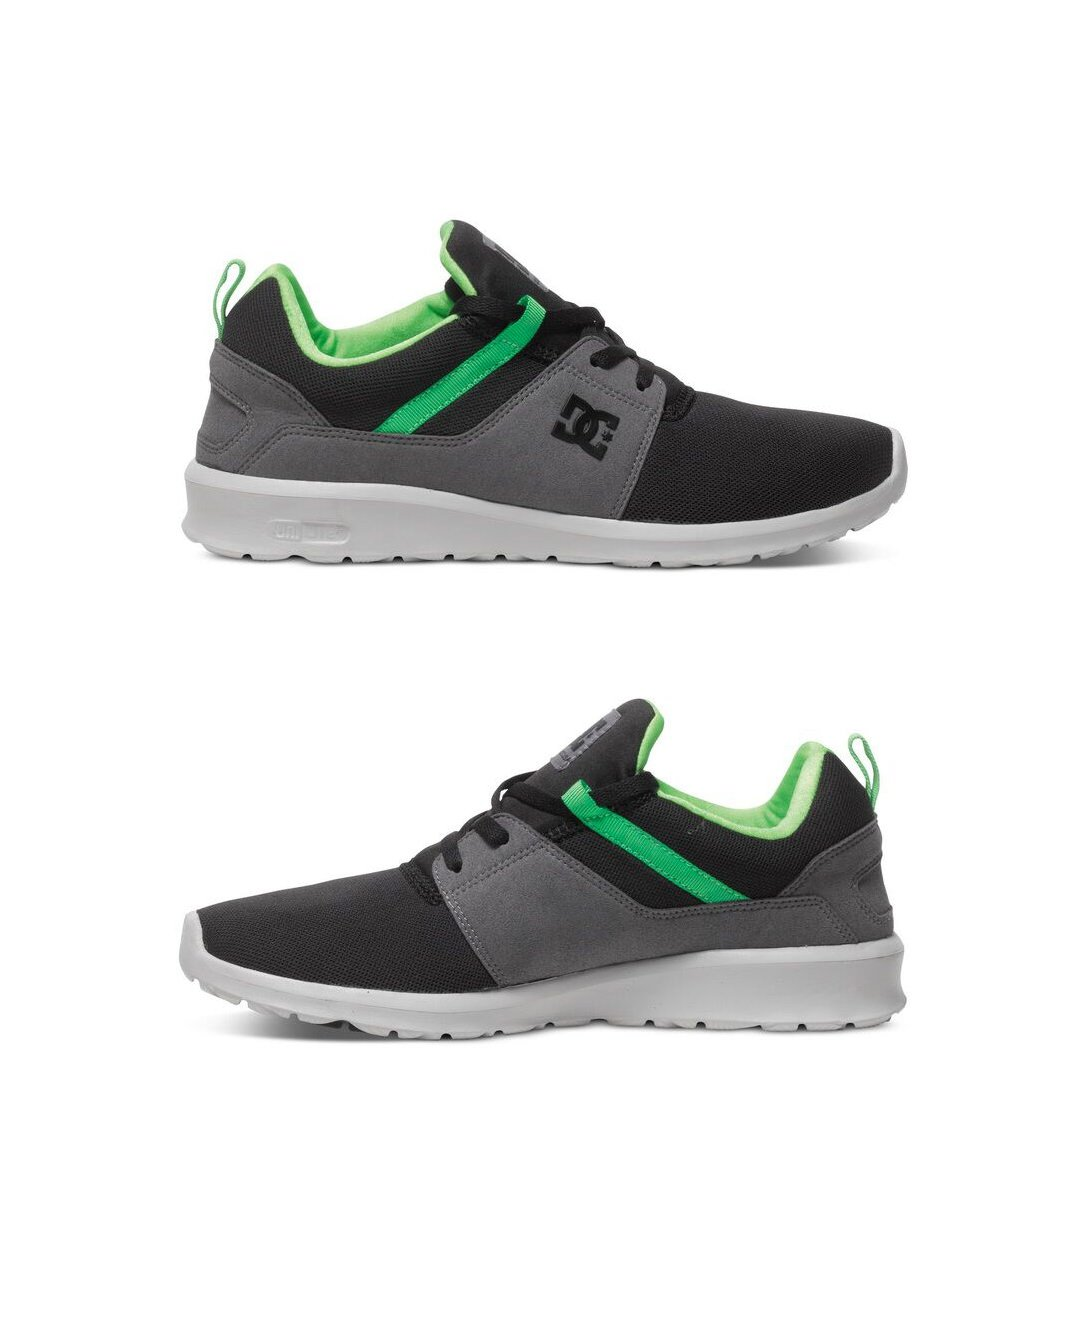 DC SHOES SCARPE HEATHROW - LM BOARD STORE